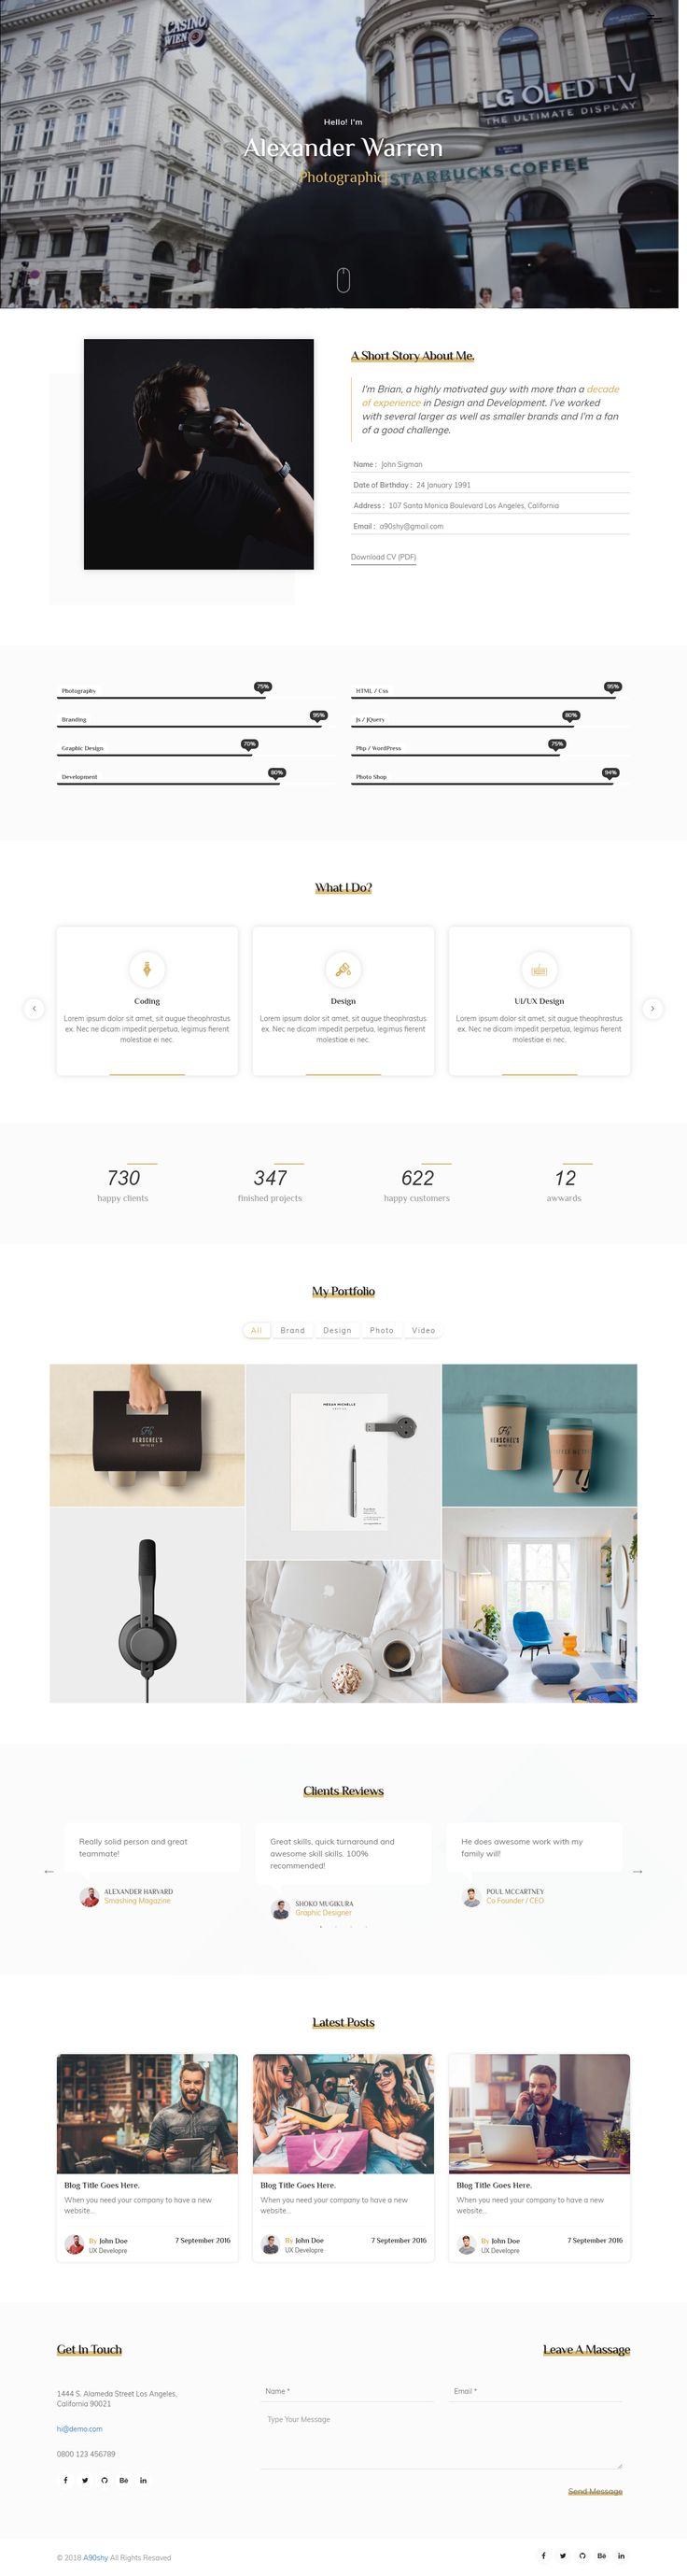 bob is a one page portfolio template, responsive based on